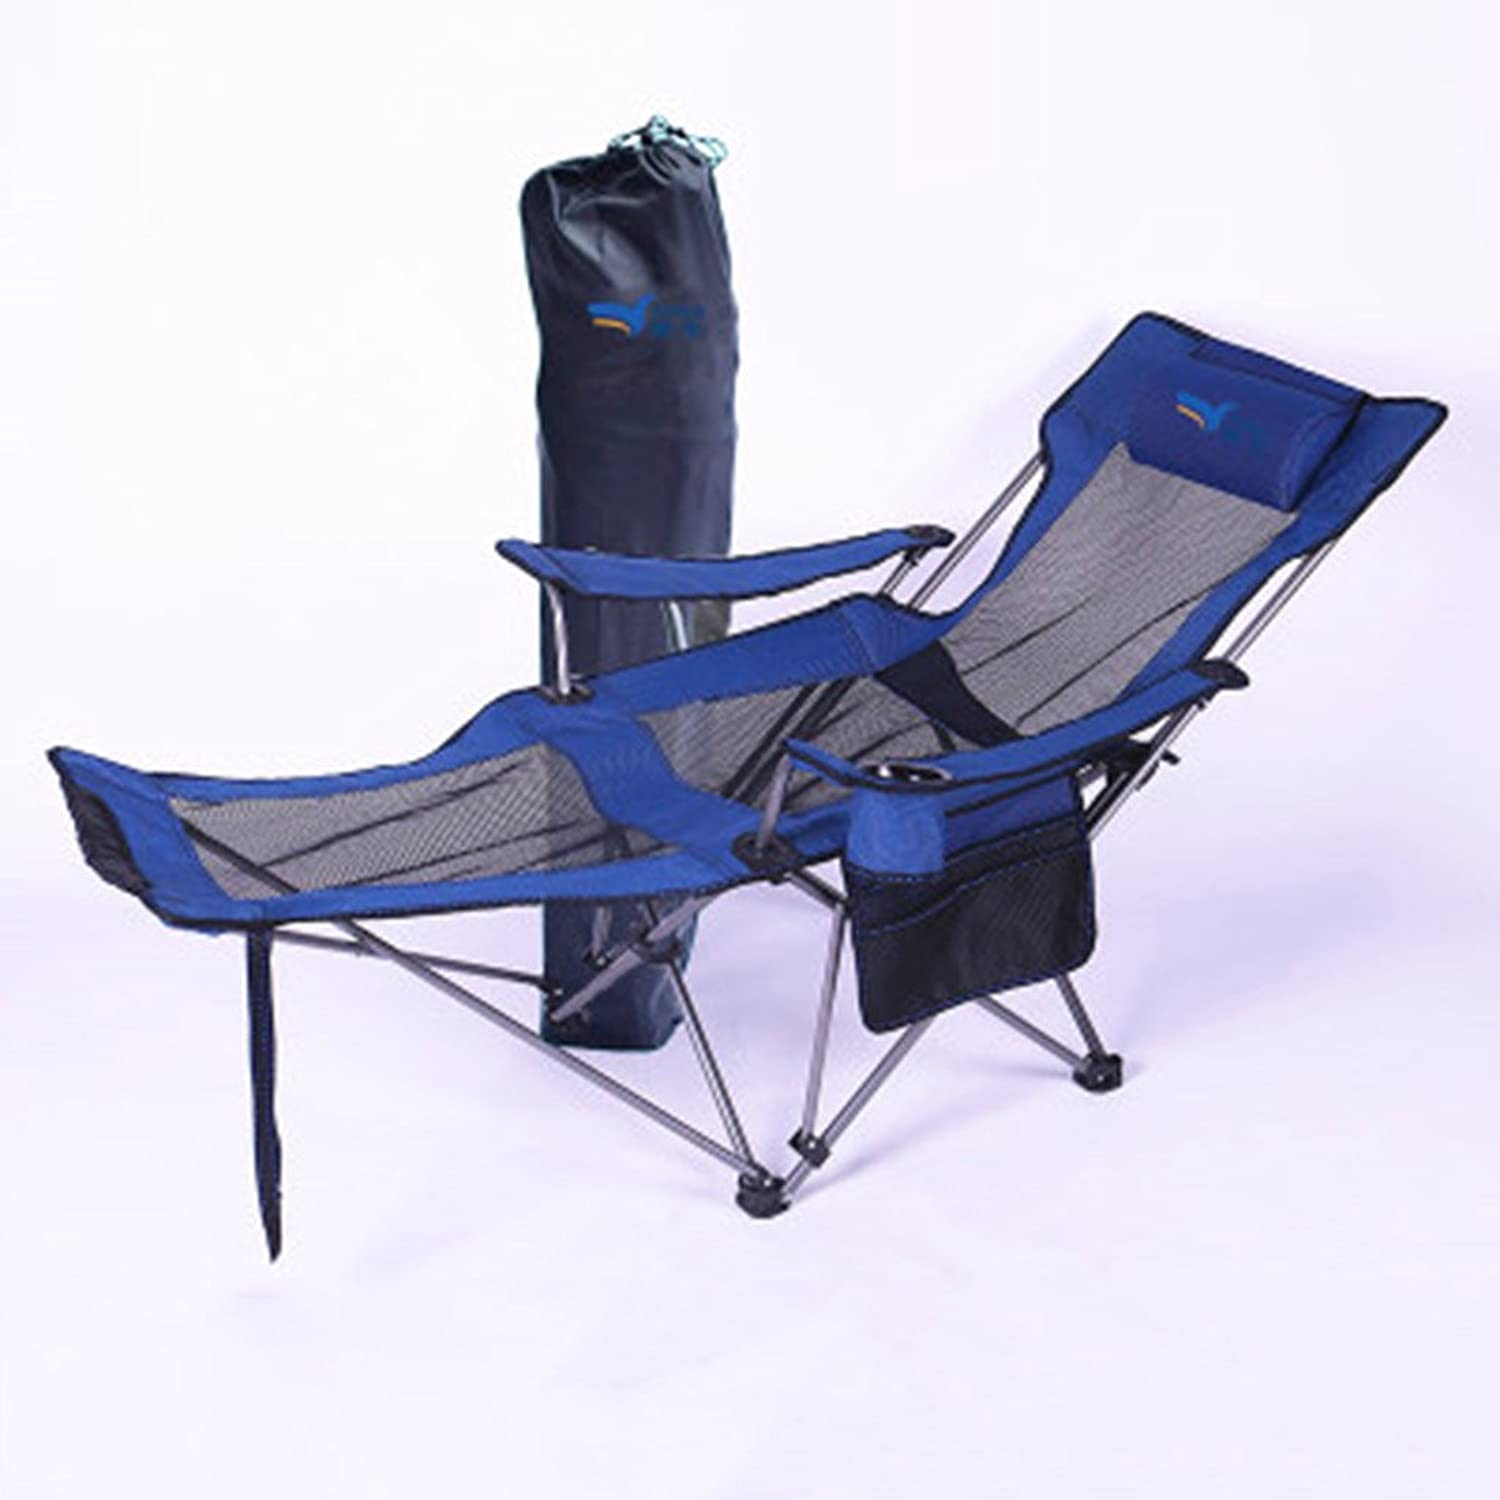 Folding Chairs Outdoor Folding Chair Napping Recliner Bed Siesta Chair Portable Leisure Chair backrest Fishing Chair Camping Beach Recliner 168  62  35cm (color   bluee)